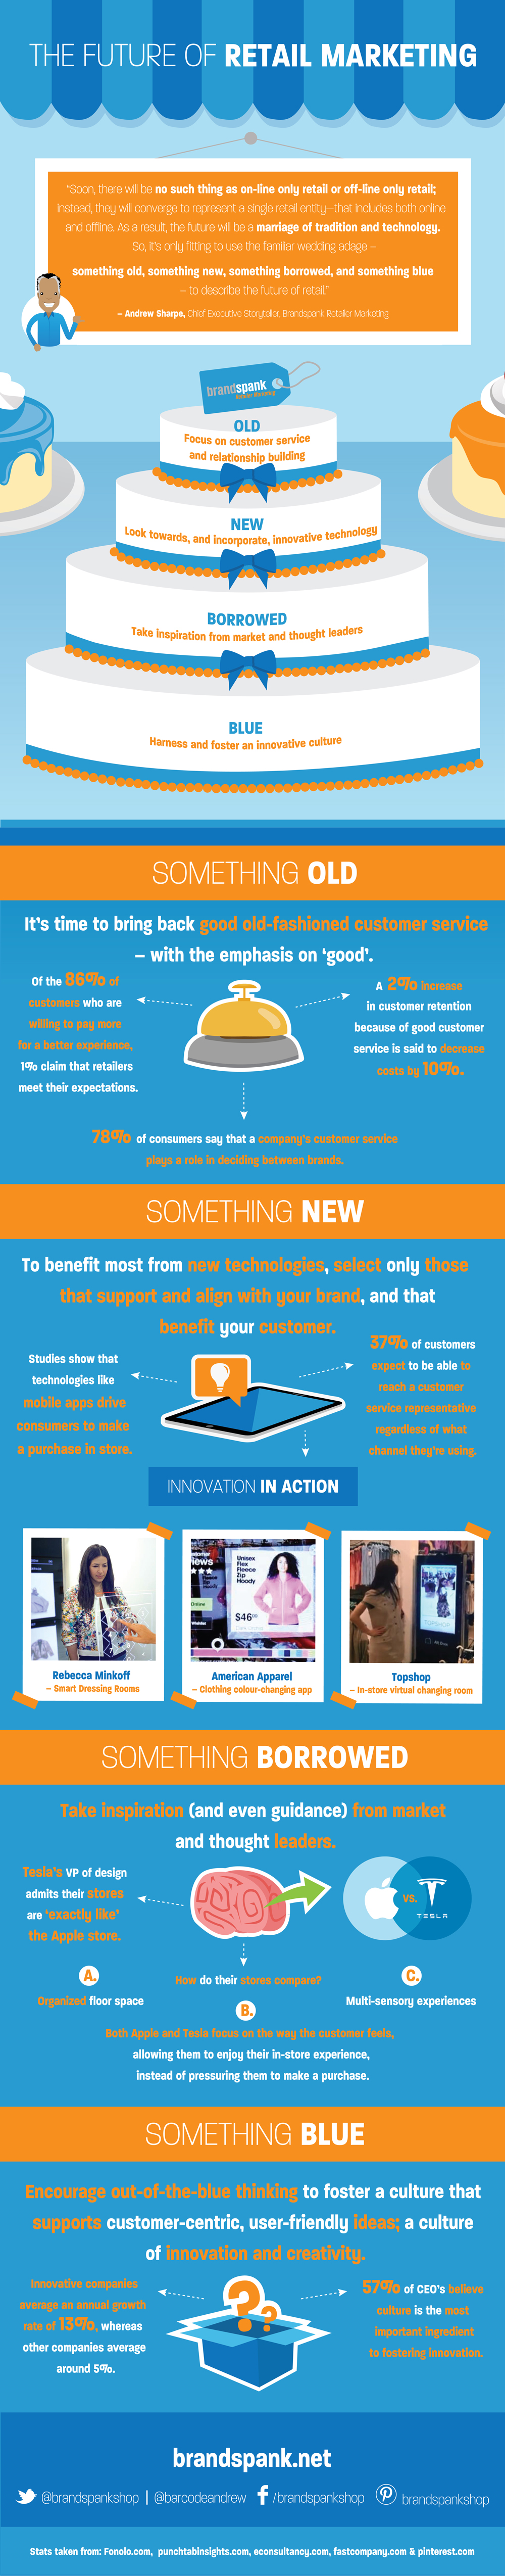 Brandspank future of retail marketing infographic